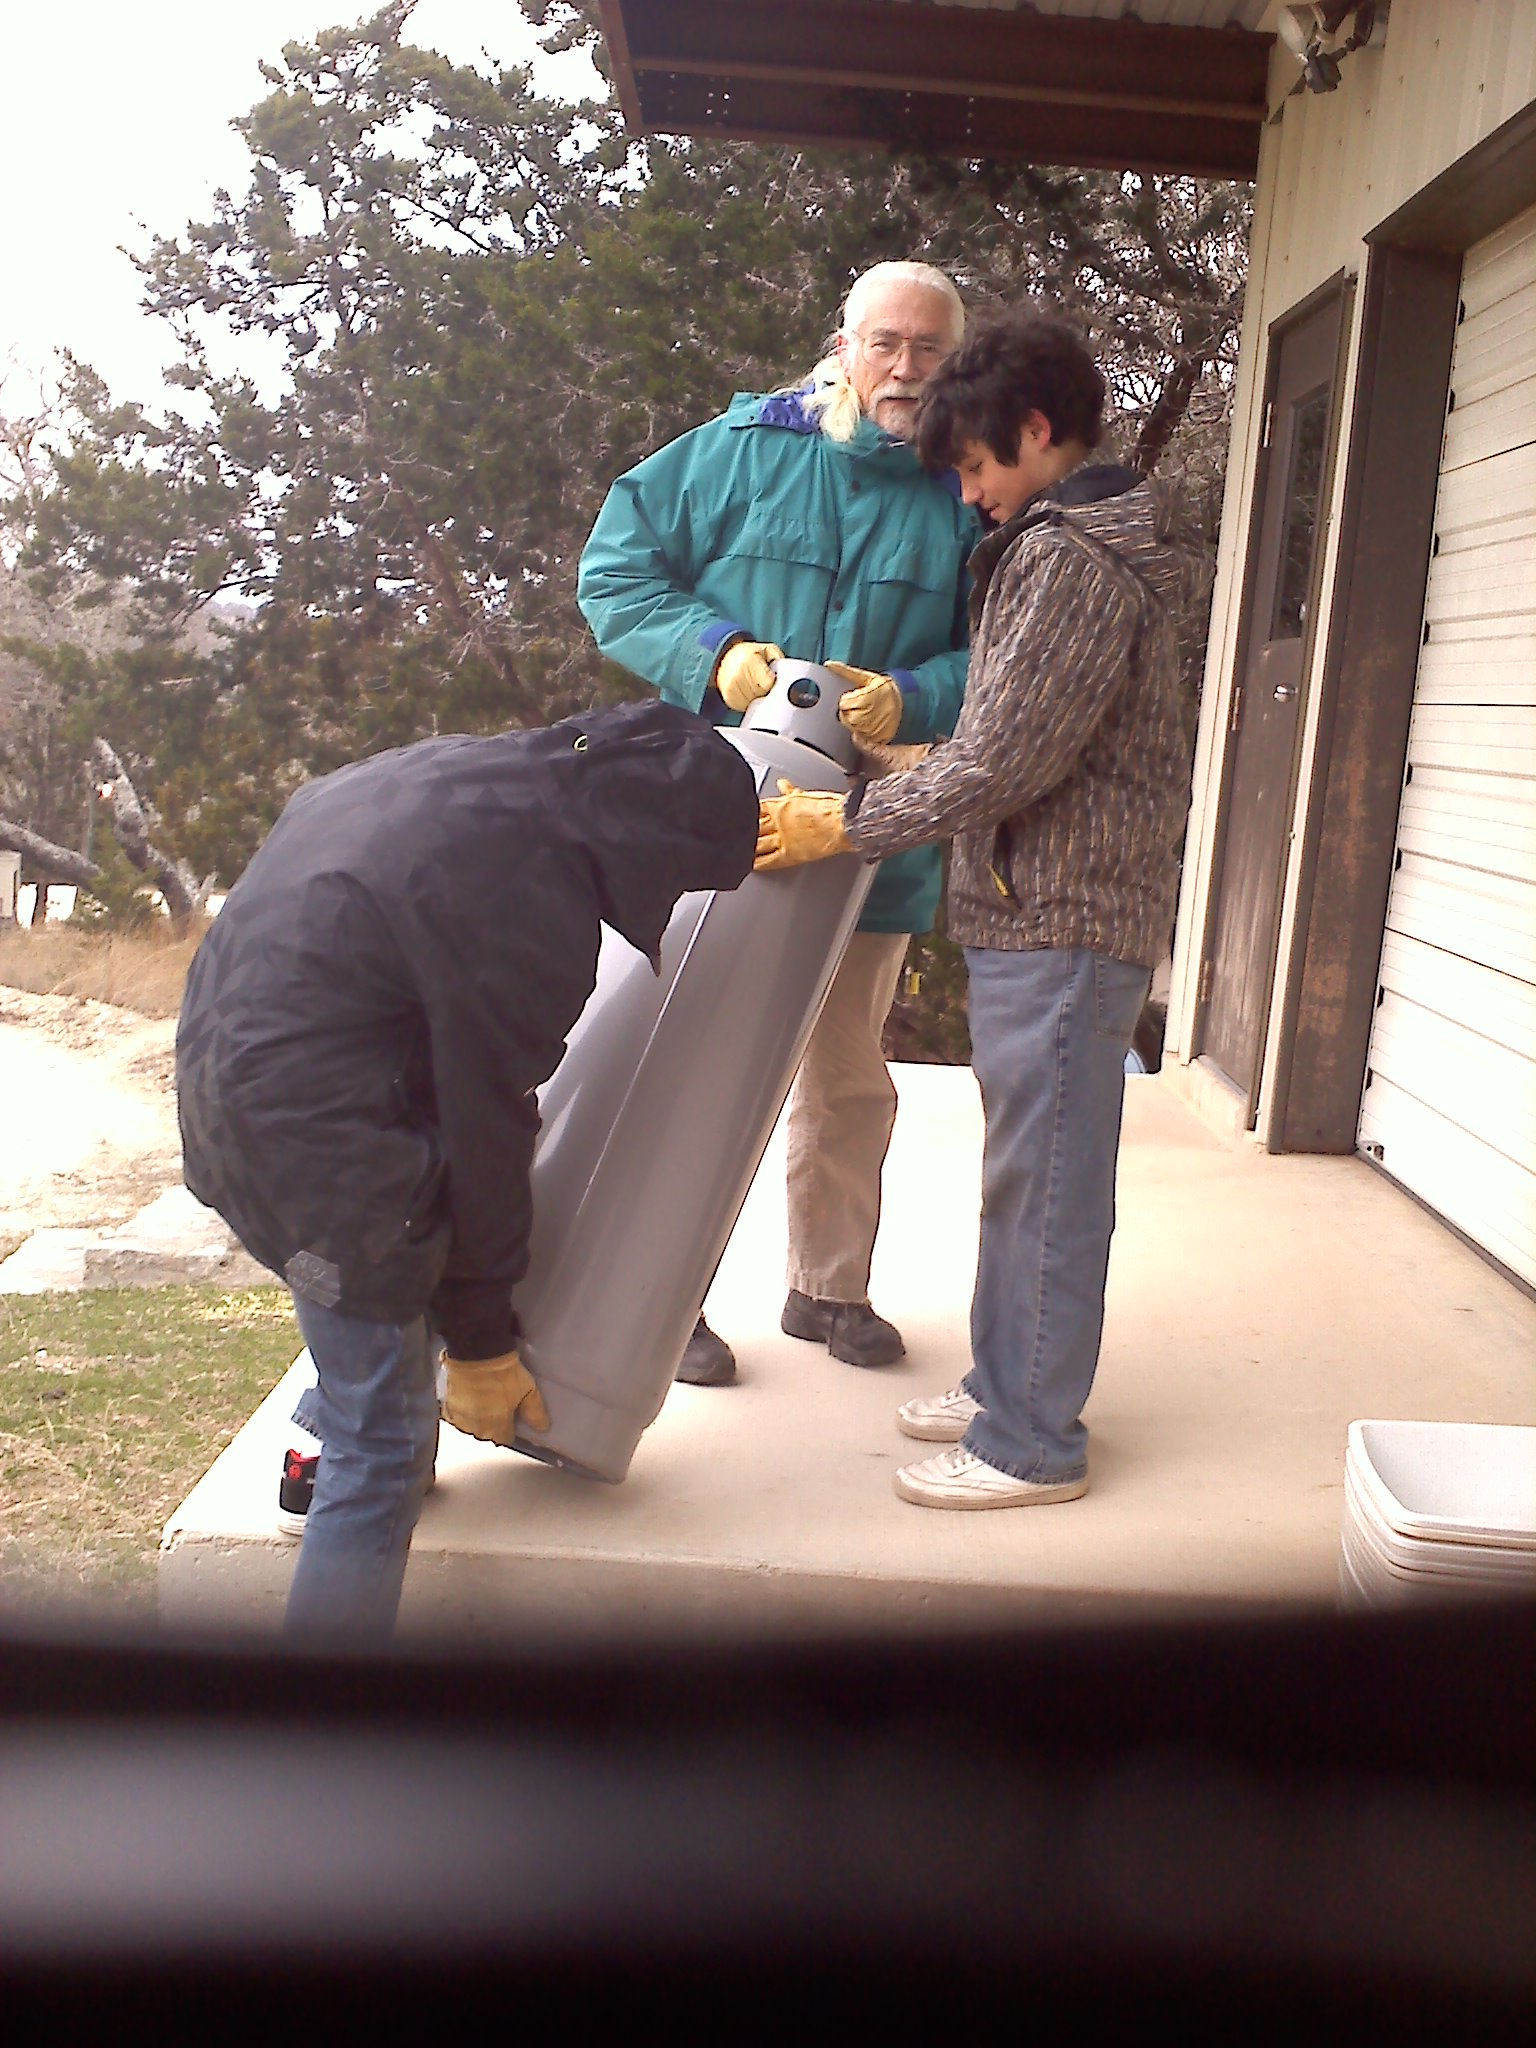 DAVE, TOM, AND GUY WORKING ON PLAN TWO THE GIANT PROPANE HEATERS